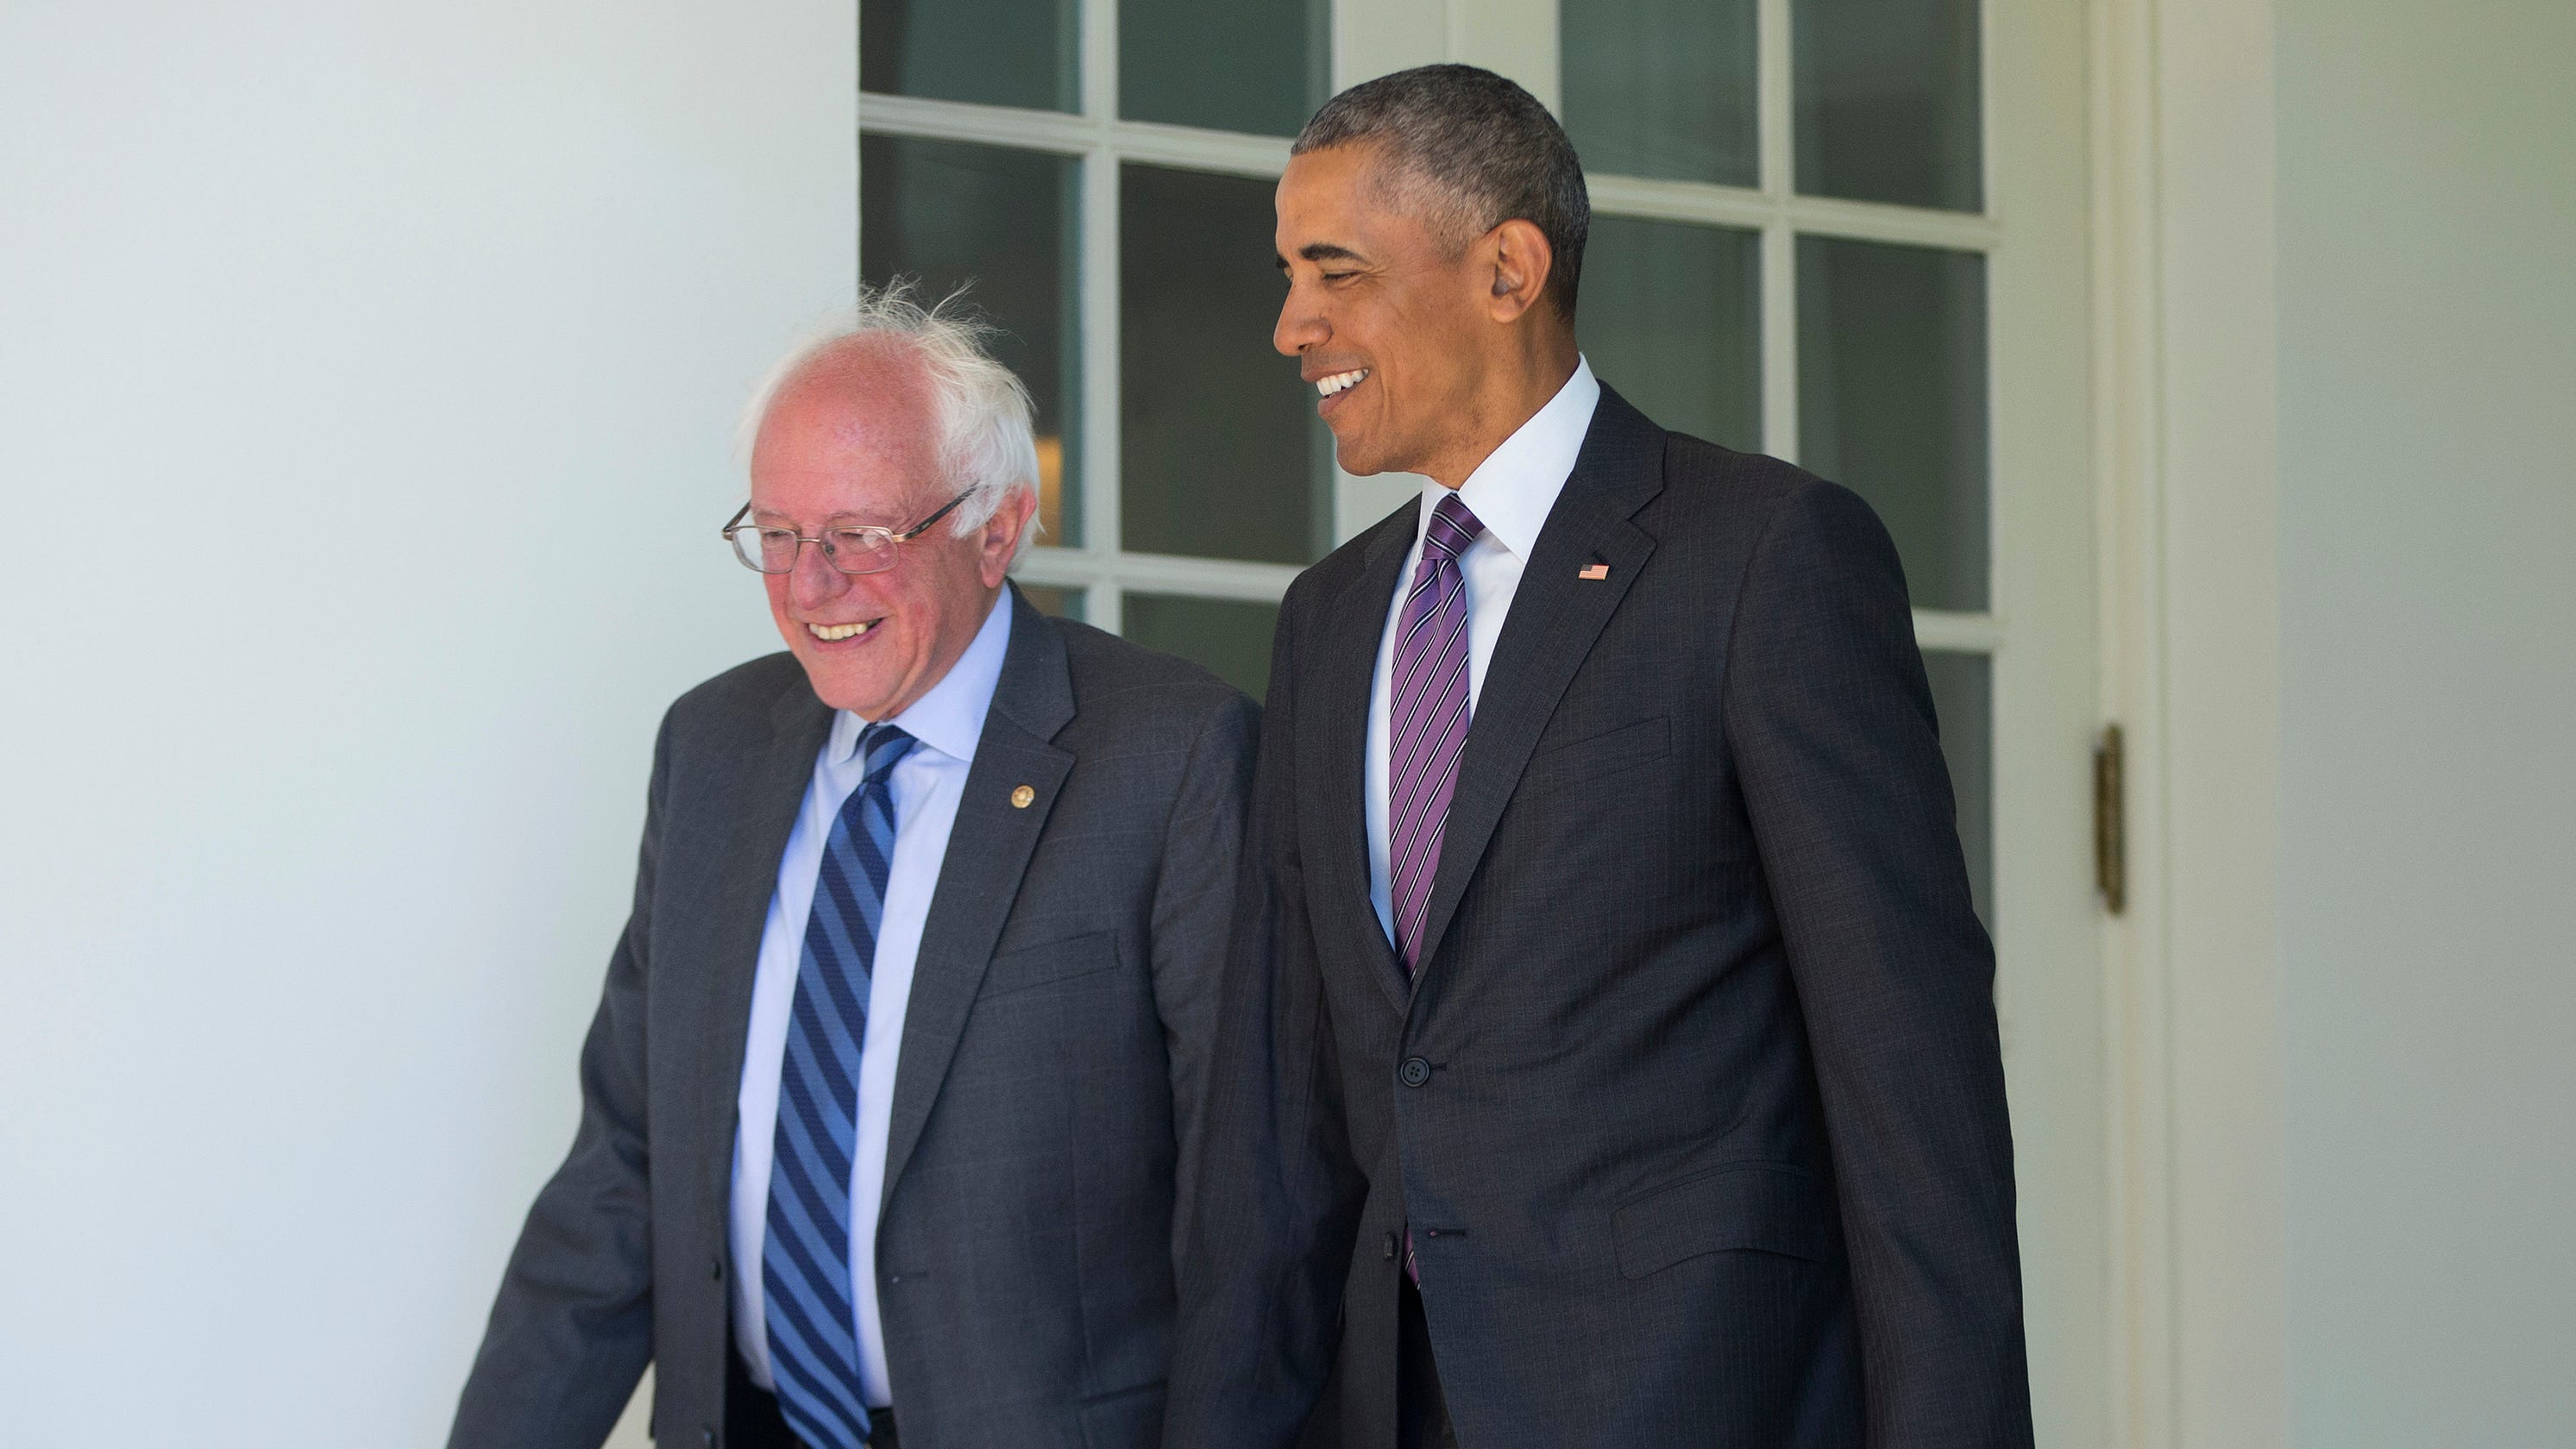 Obama and I took a class about socialism's dark side. Bernie would have learned a lot.